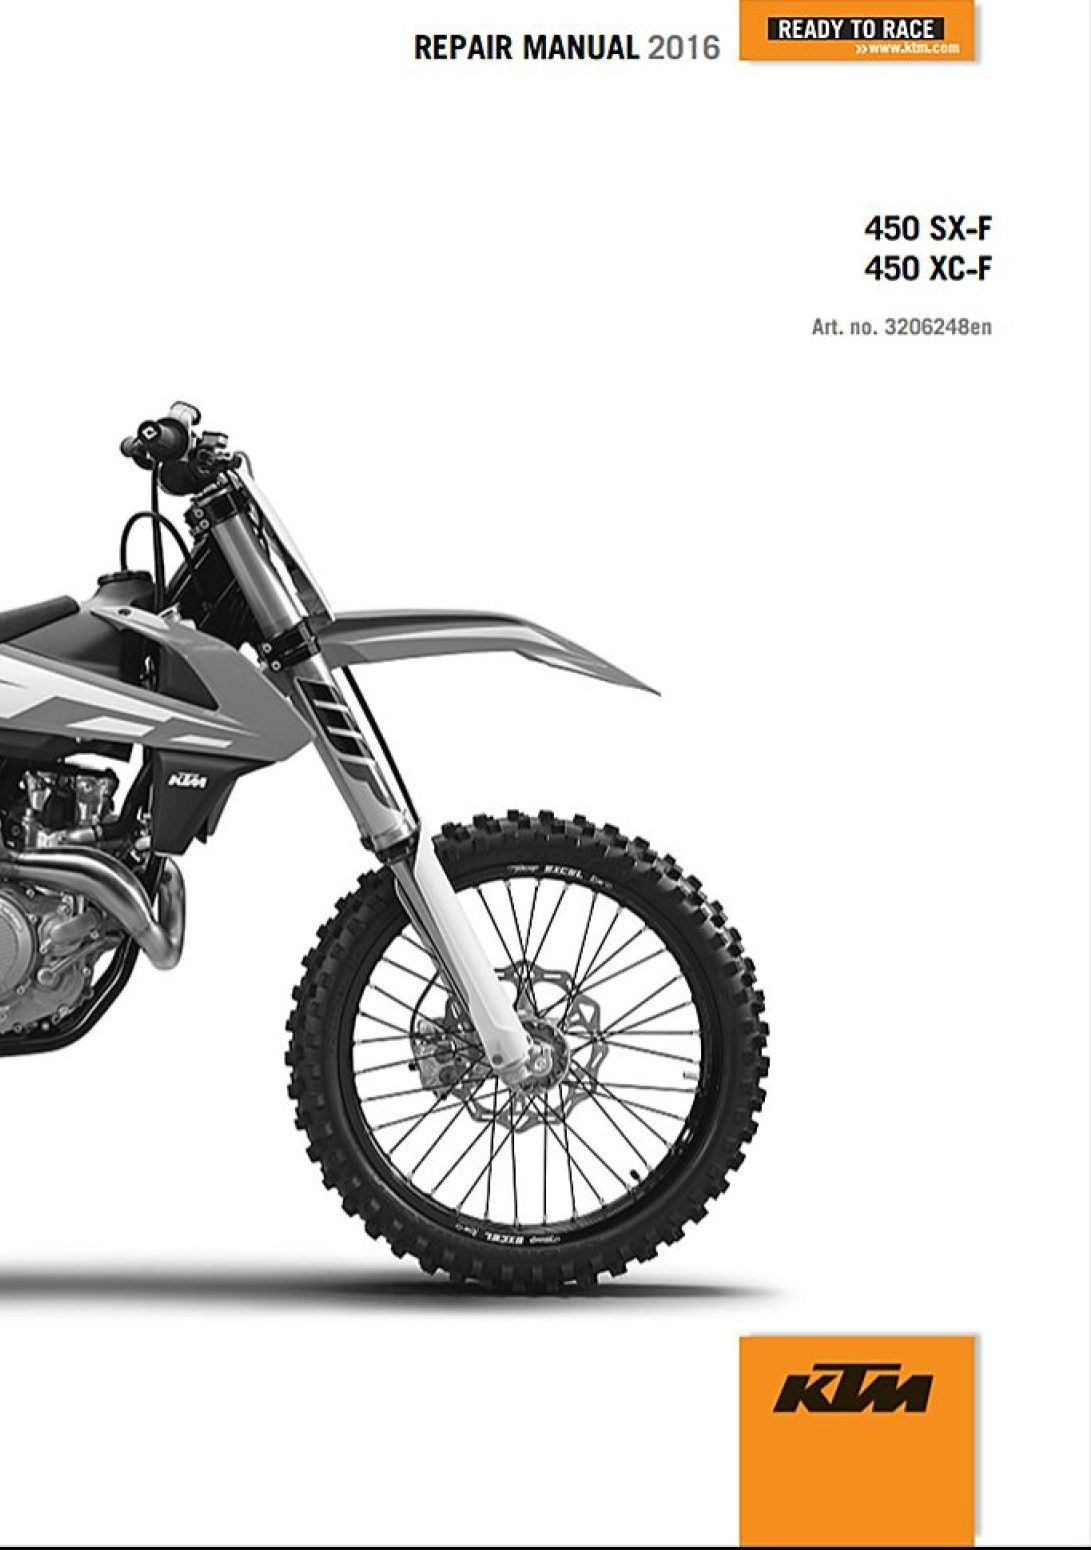 COVERS ALL MODELS LISTED ABOVE & ALL REPAIRS A-Z This is a GENUINE KTM  COMPLETE SERVICE REPIAR MANUAL for 2016 KTM 450 ...